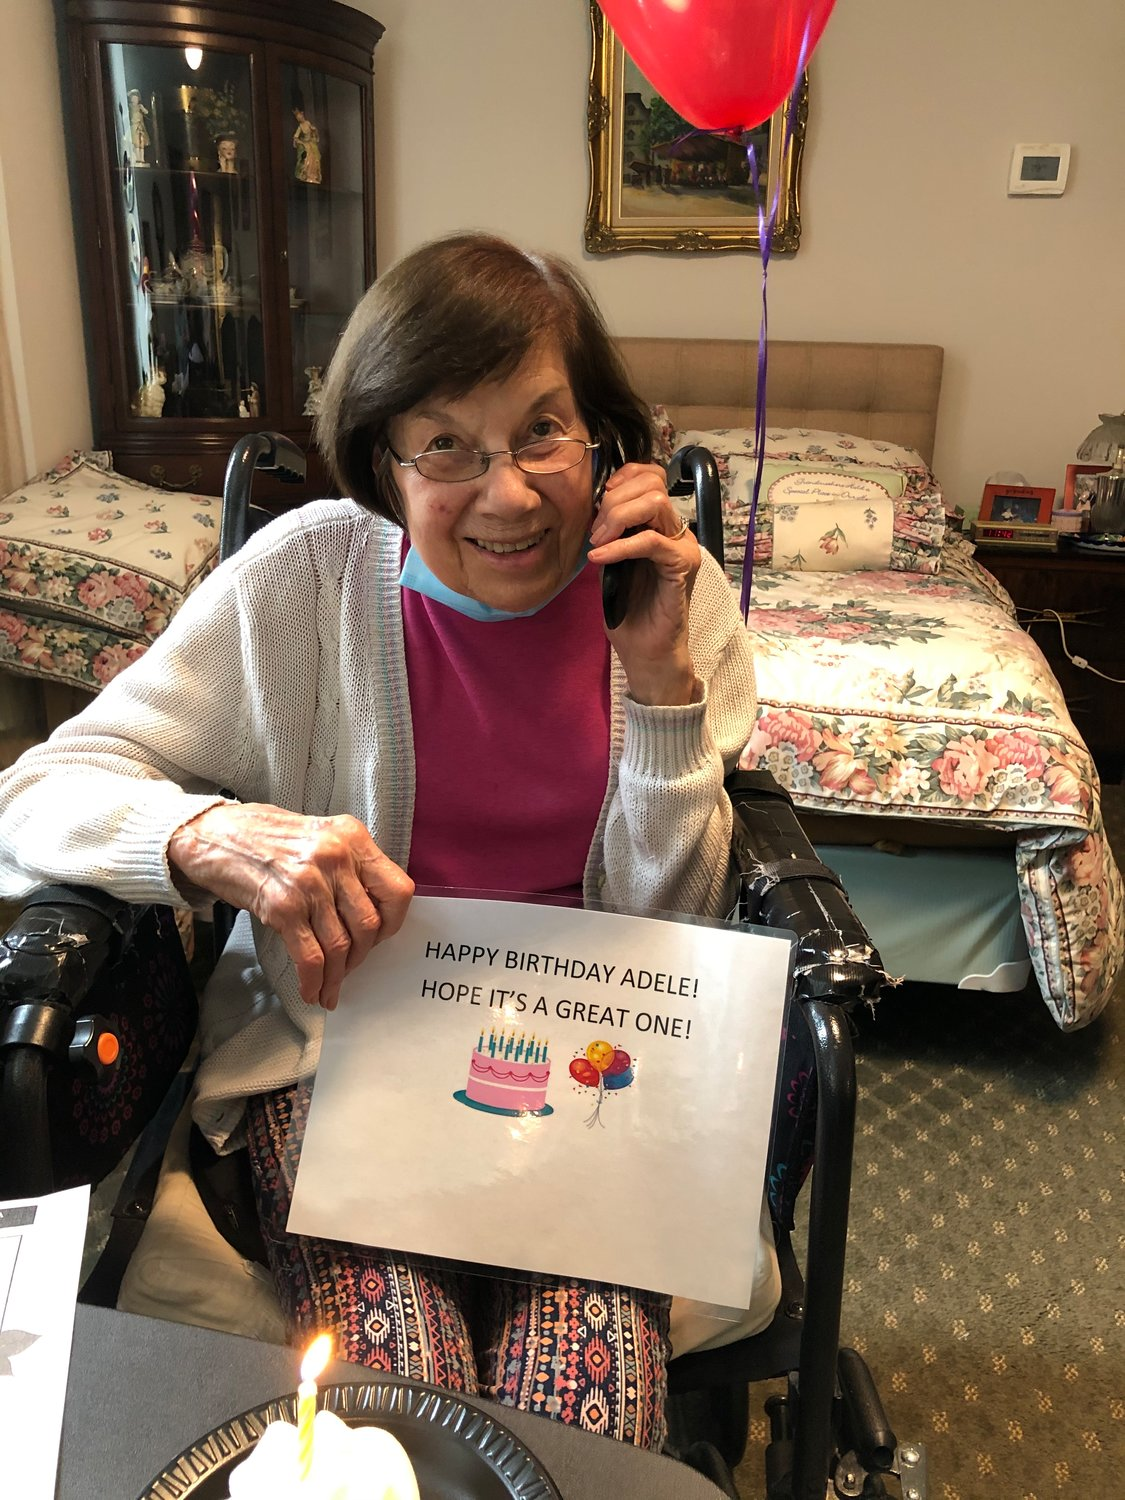 Adele Bennett, a resident at The Regency, celebrated turning 91 with her family over FaceTime.